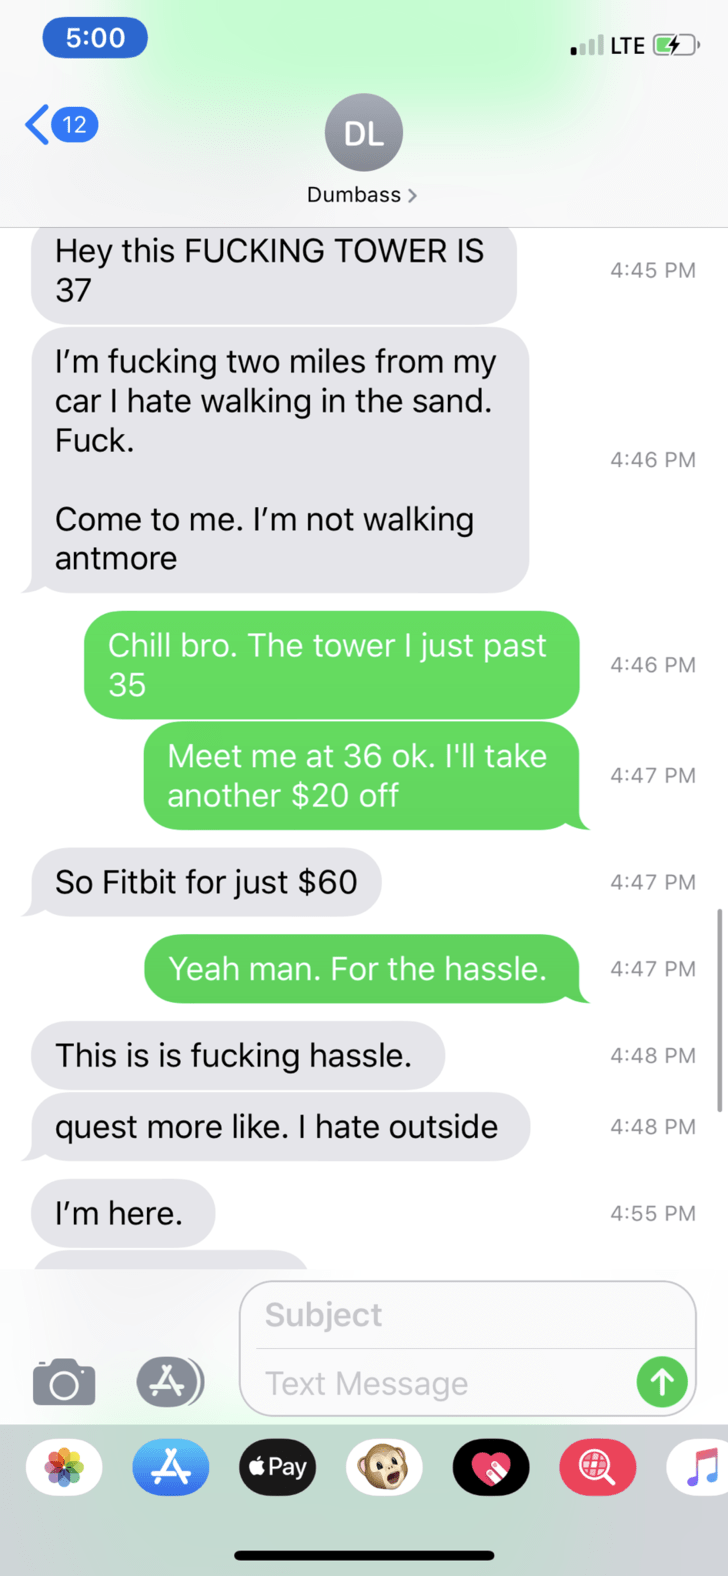 Text - 5:00 all LTE 12 DL Dumbass Hey this FUCKING TOWER IS 4:45 PM 37 I'm fucking two miles from my car I hate walking in the sand. Fuck. 4:46 PM Come to me. I'm not walking antmore Chill bro. The tower I just past 4:46 PM 35 Meet me at 36 ok. I'll take 4:47 PM another $20 off So Fitbit for just $60 4:47 PM Yeah man. For the hassle. 4:47 PM This is is fucking hassle. 4:48 PM quest more like. I hate outside 4:48 PM I'm here. 4:55 PM Subject Text Message Pay